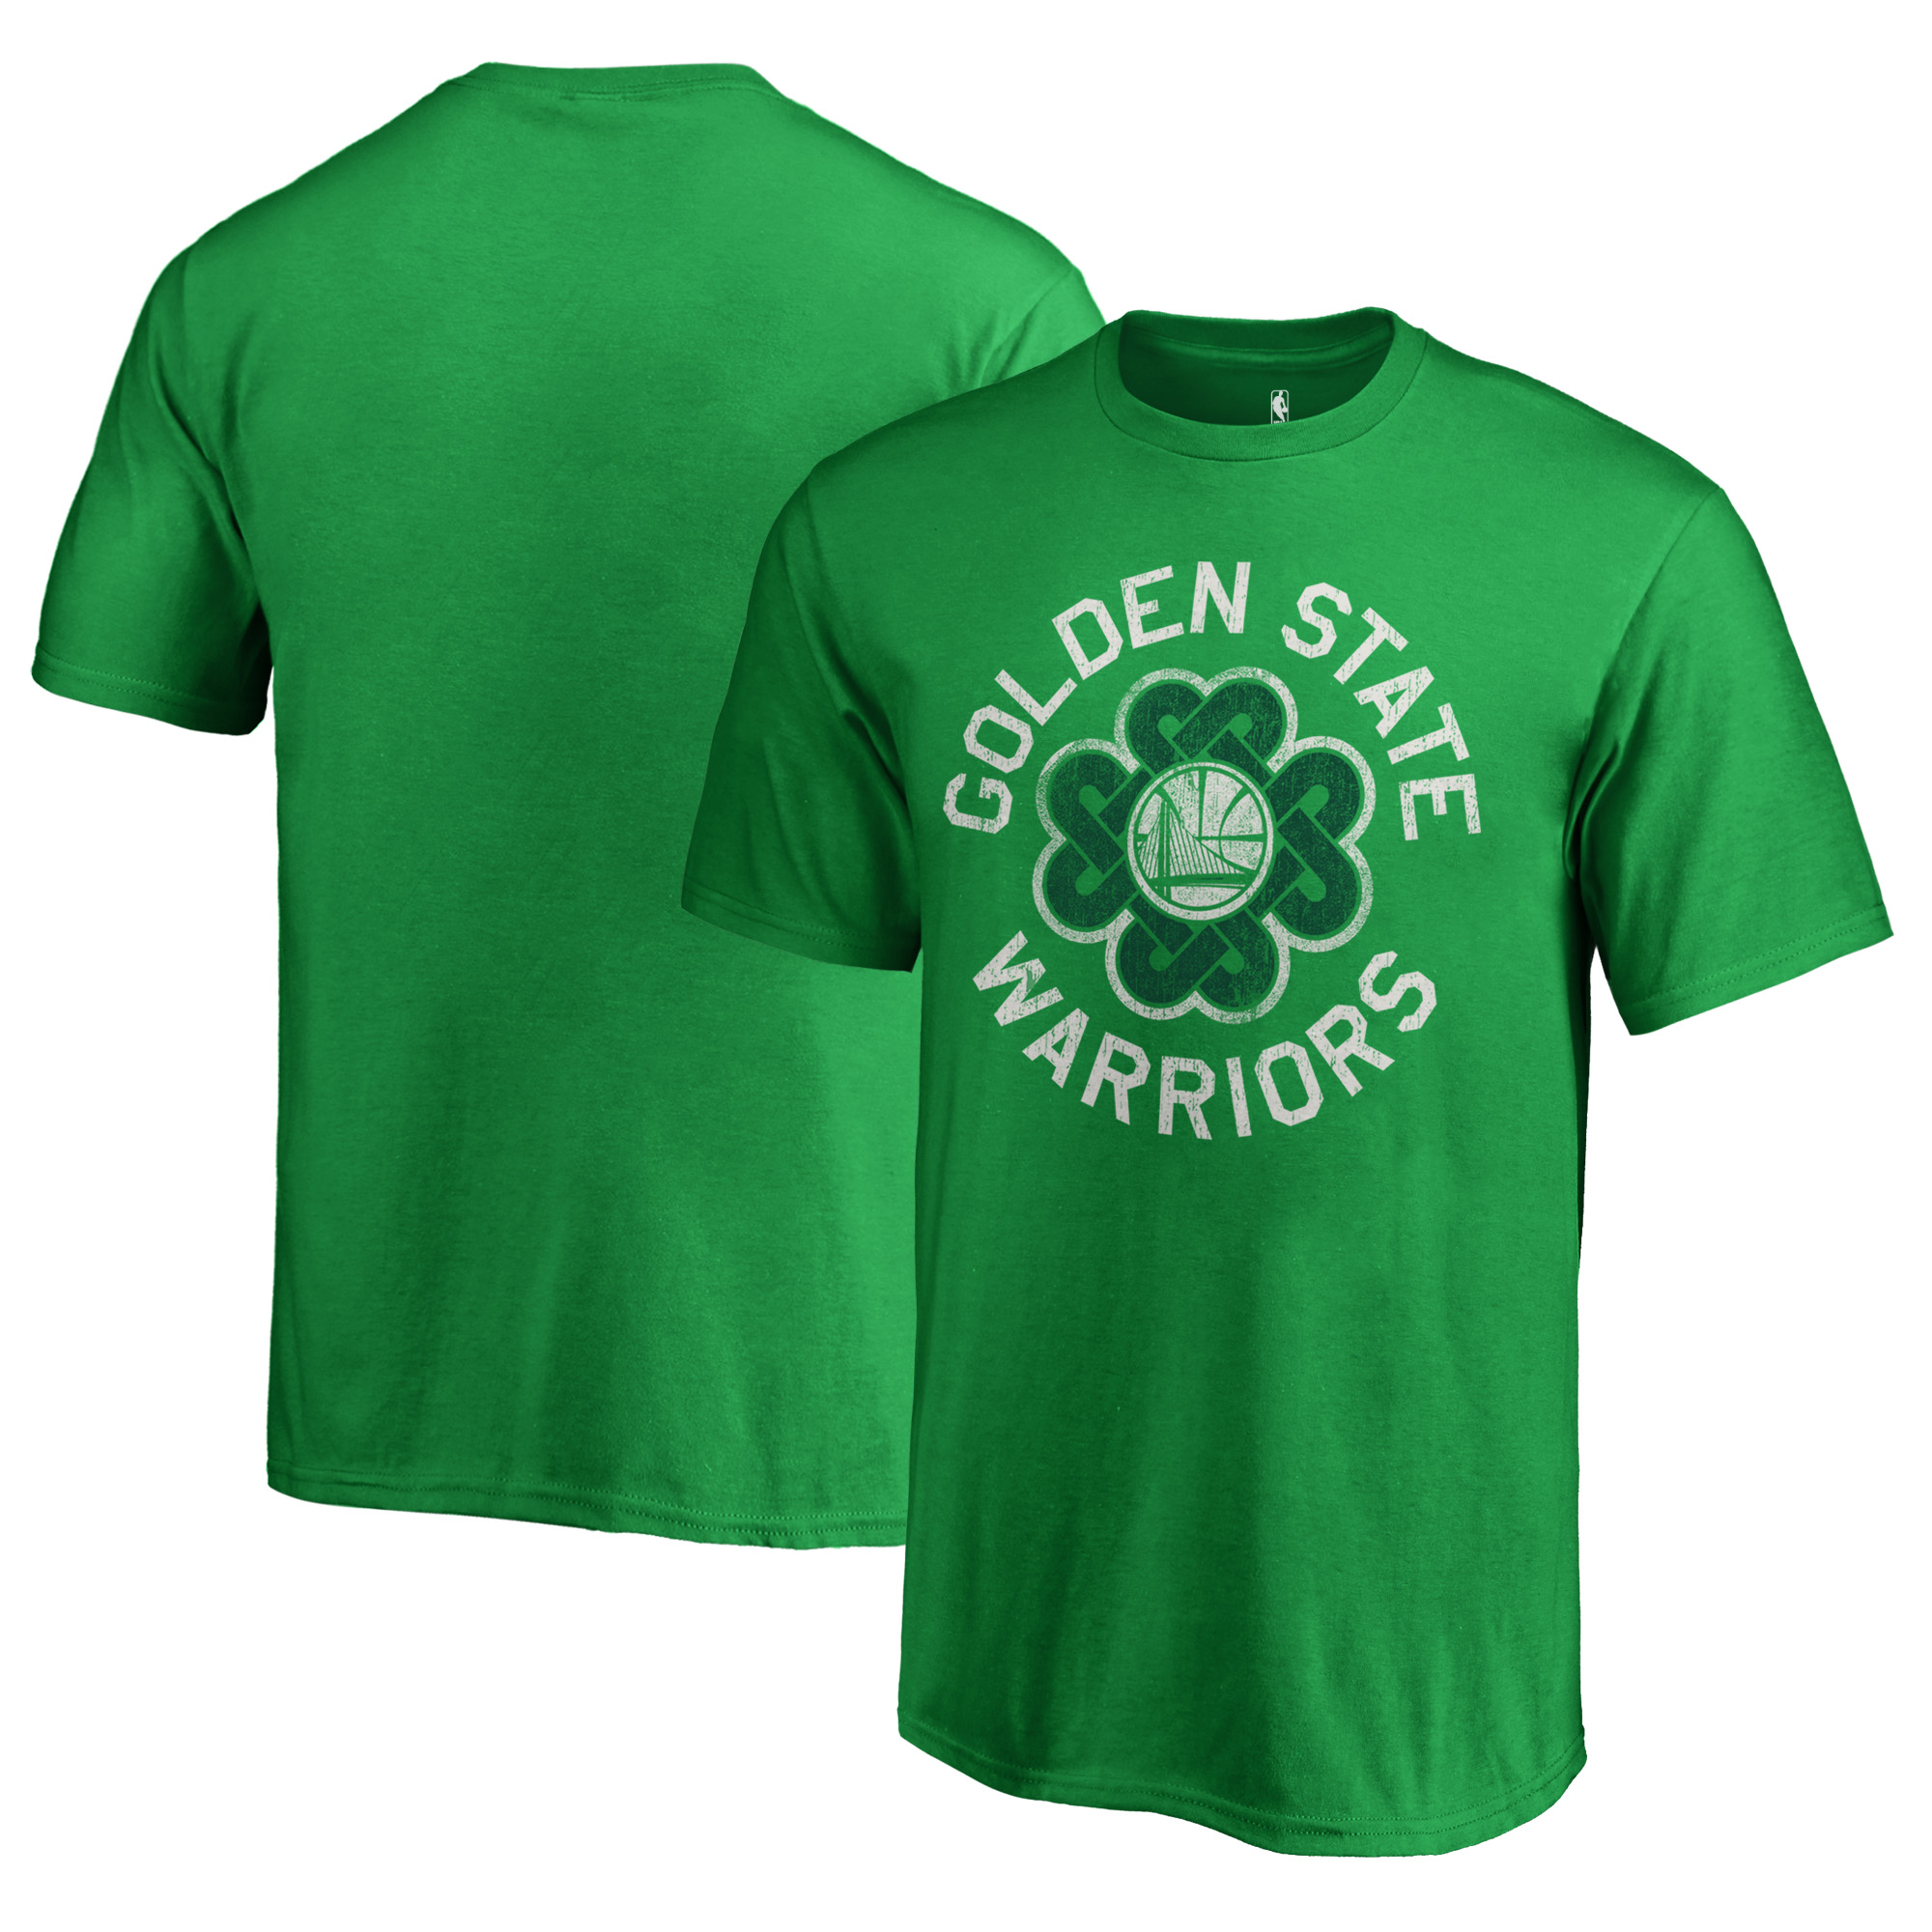 Golden State Warriors Fanatics Branded Youth St. Patrick's Day Luck Tradition T-Shirt - Kelly Green